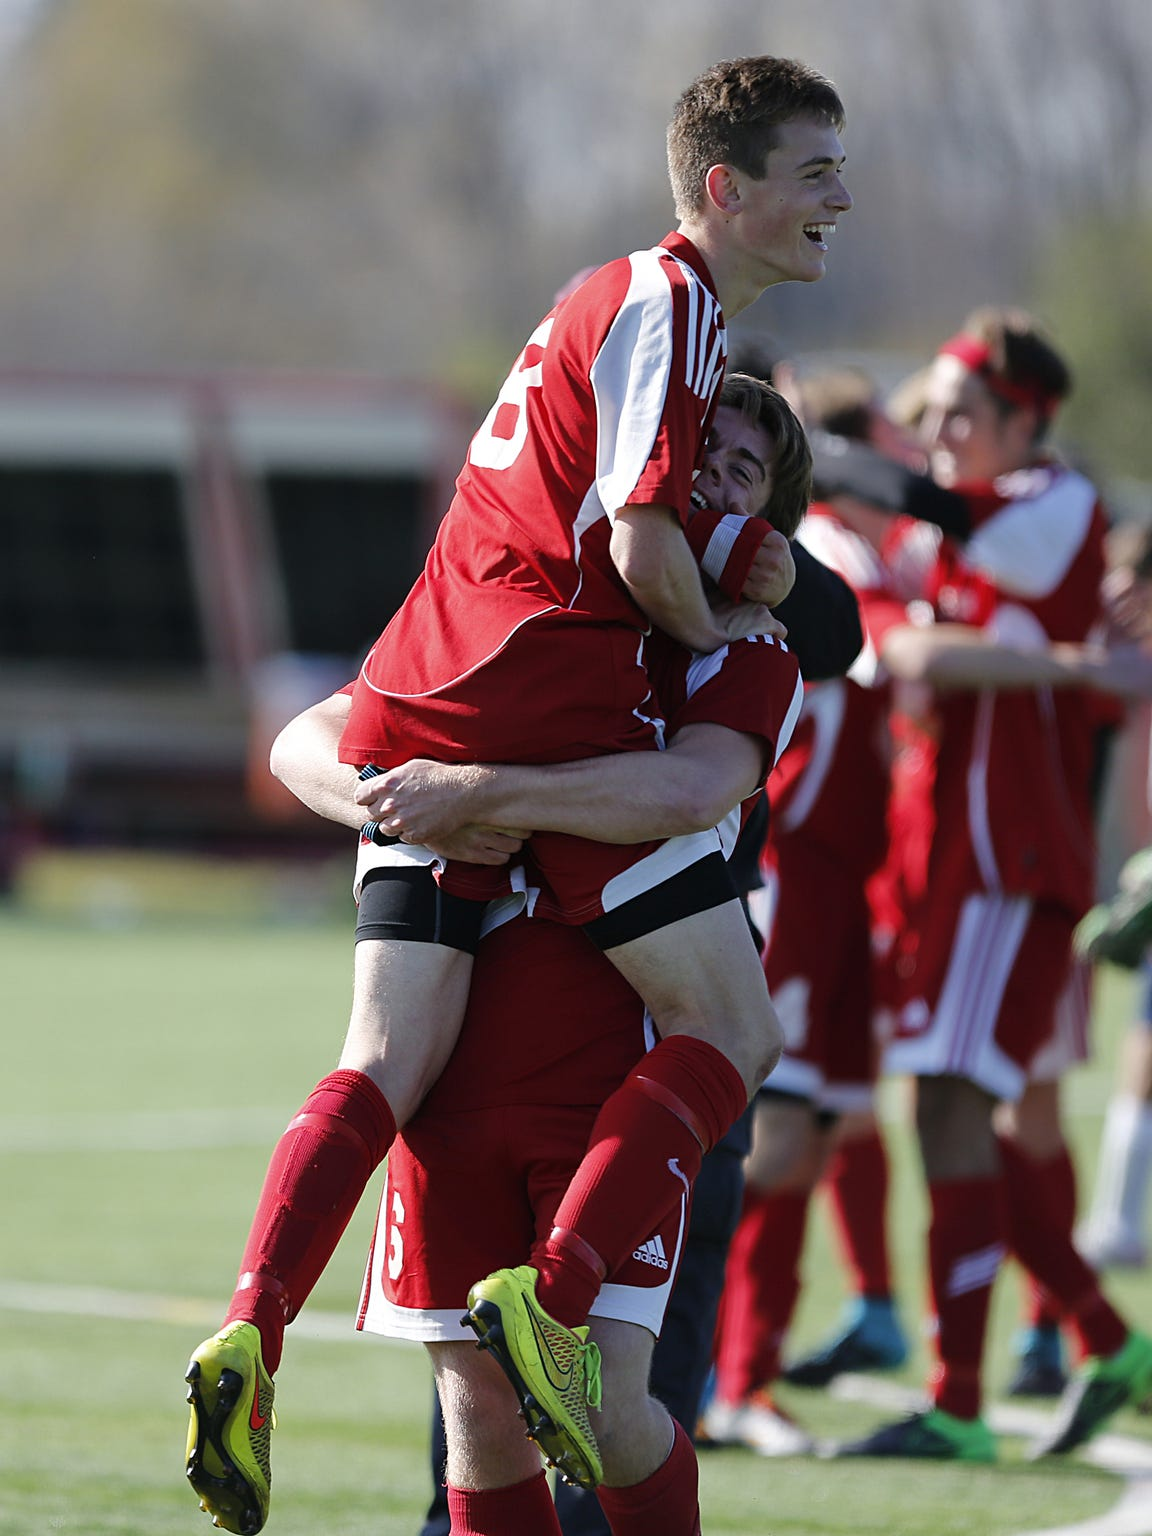 Sturgeon Bay's Levi Haight celebrates with a teammate during the Clippers' 2-0 win in the WIAA Division 4 state title game on Nov. 7.